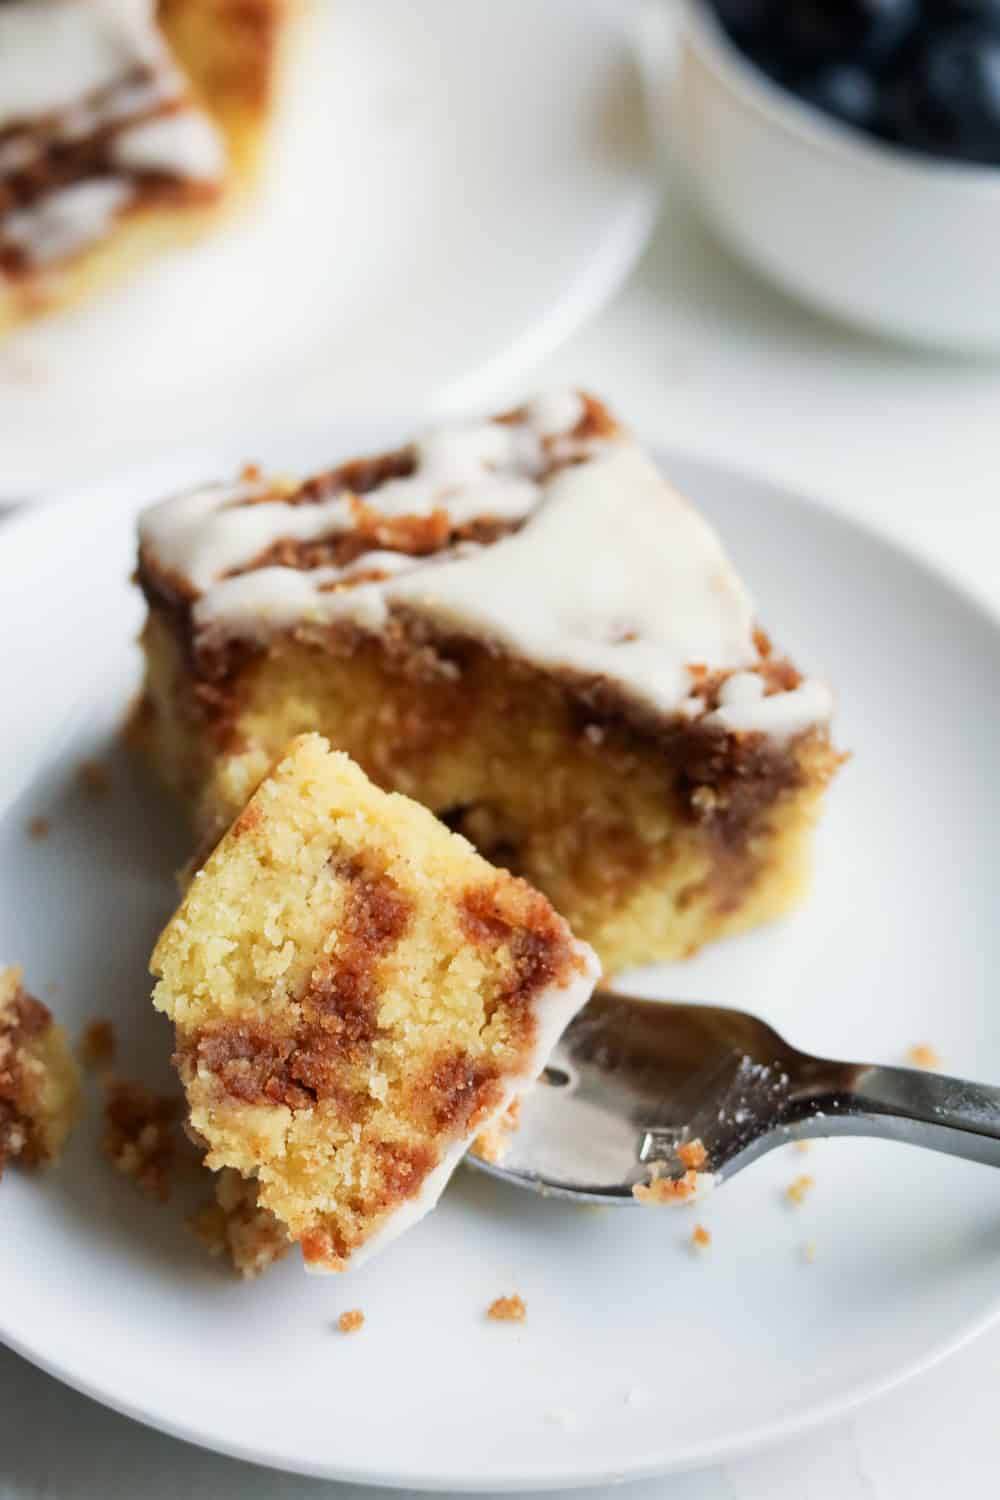 A fork holding a piece of coffee cake on a white plate.